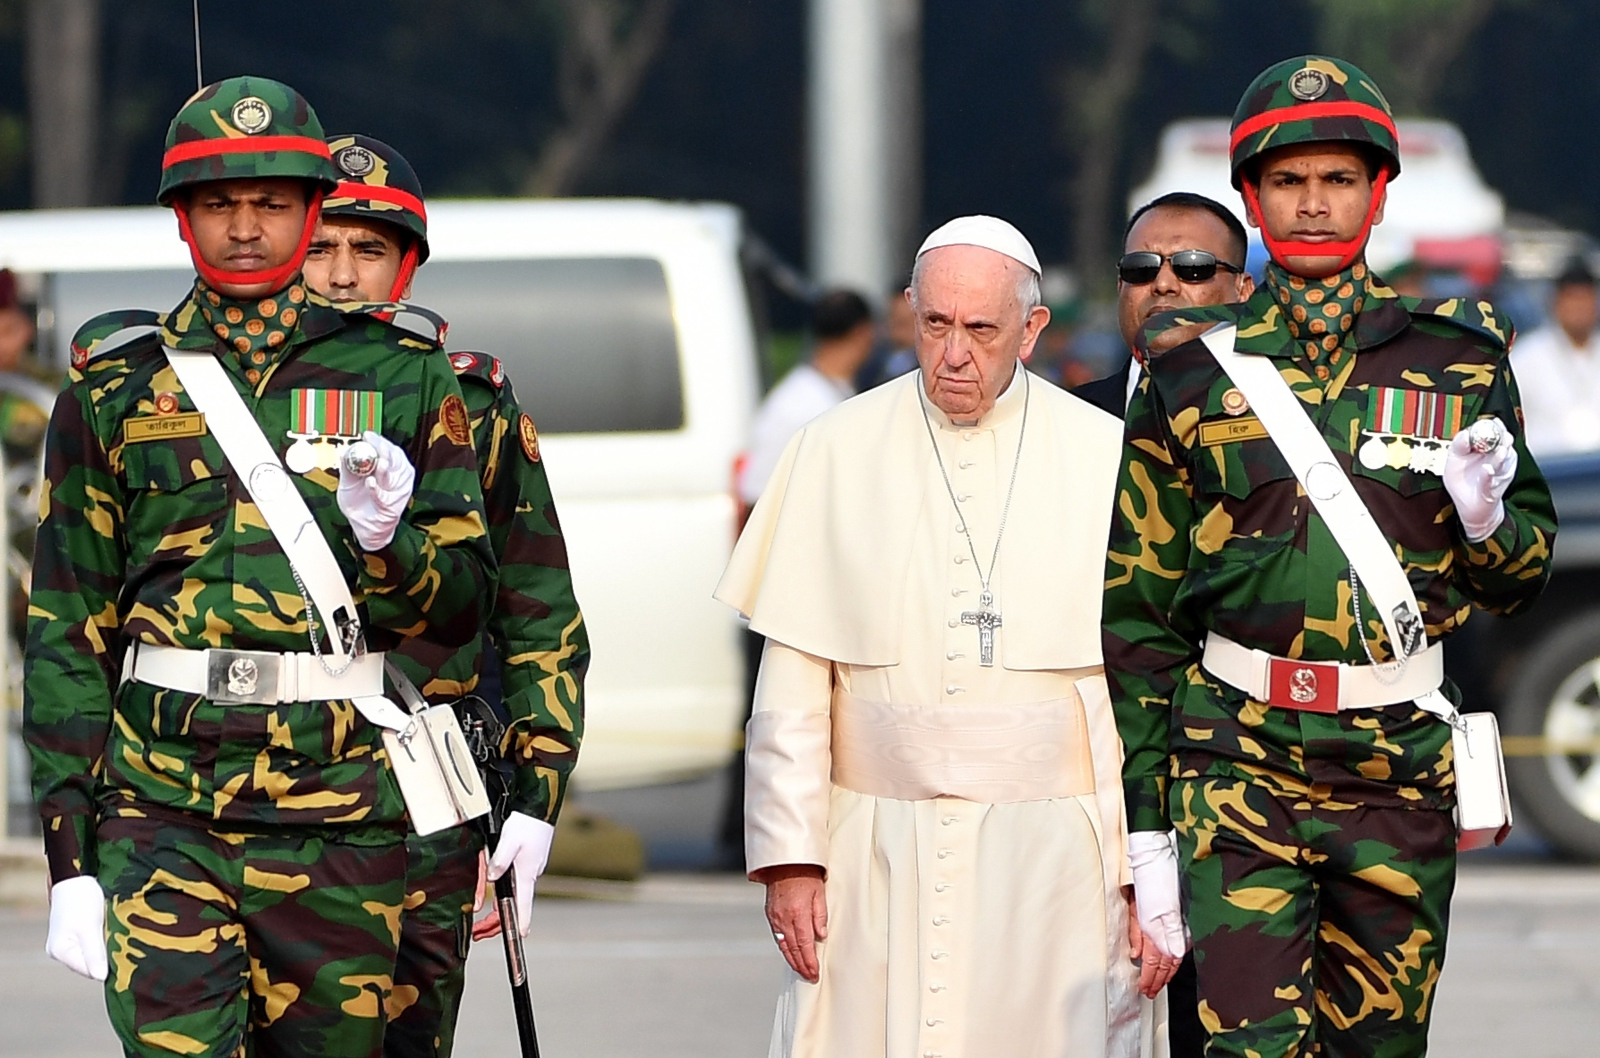 epa06359088 Pope Francis reviews a honor guard during a welcome ceremony as he arrives at Dhaka International Airport in Dhaka, Bangladesh, 30 November 2017. Pope Francis' visit in Myanmar and Bangladesh runs from 27 November to 02 December 2017.  EPA/ETTORE FERRARI Dostawca: PAP/EPA.